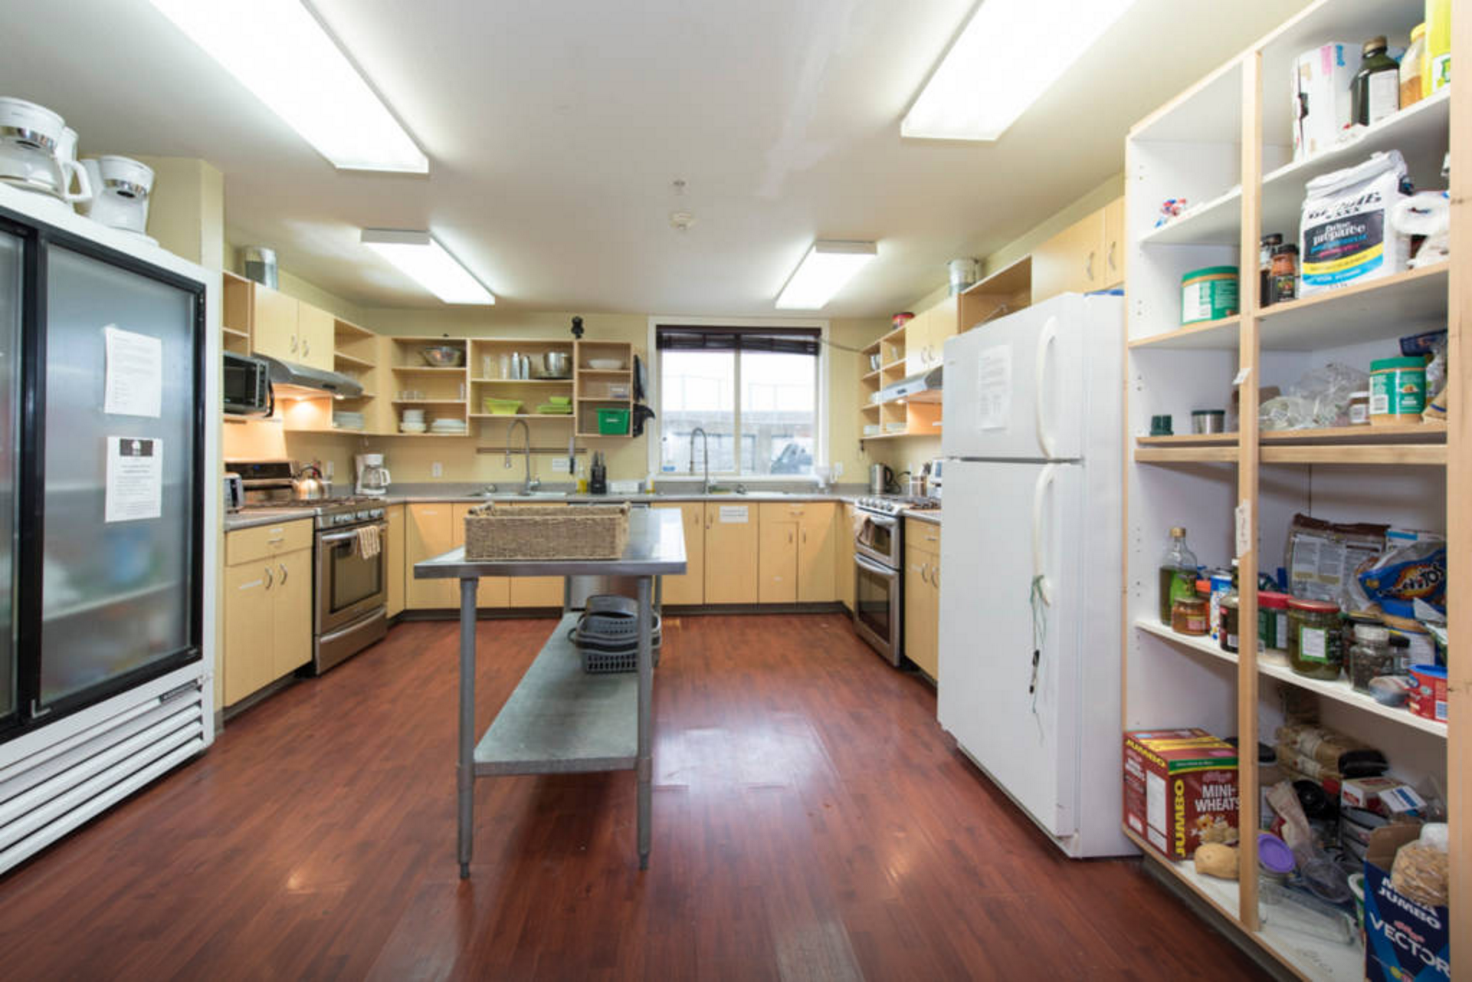 kitchen straight towards window - airbnb.png